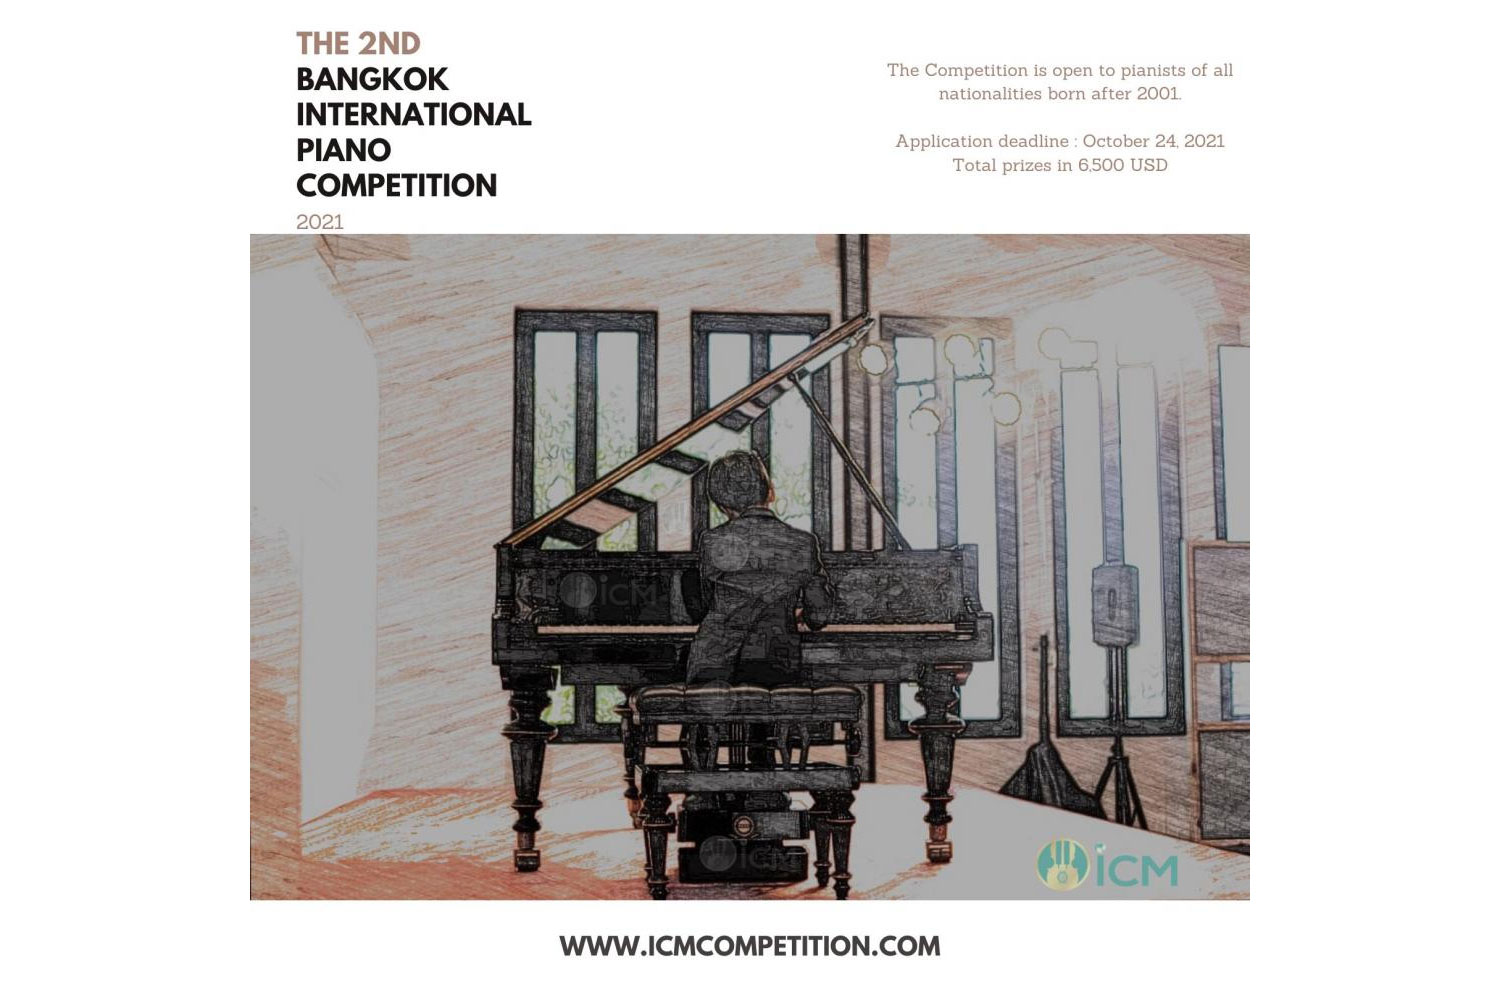 Youth pianists invited to compete for prizes